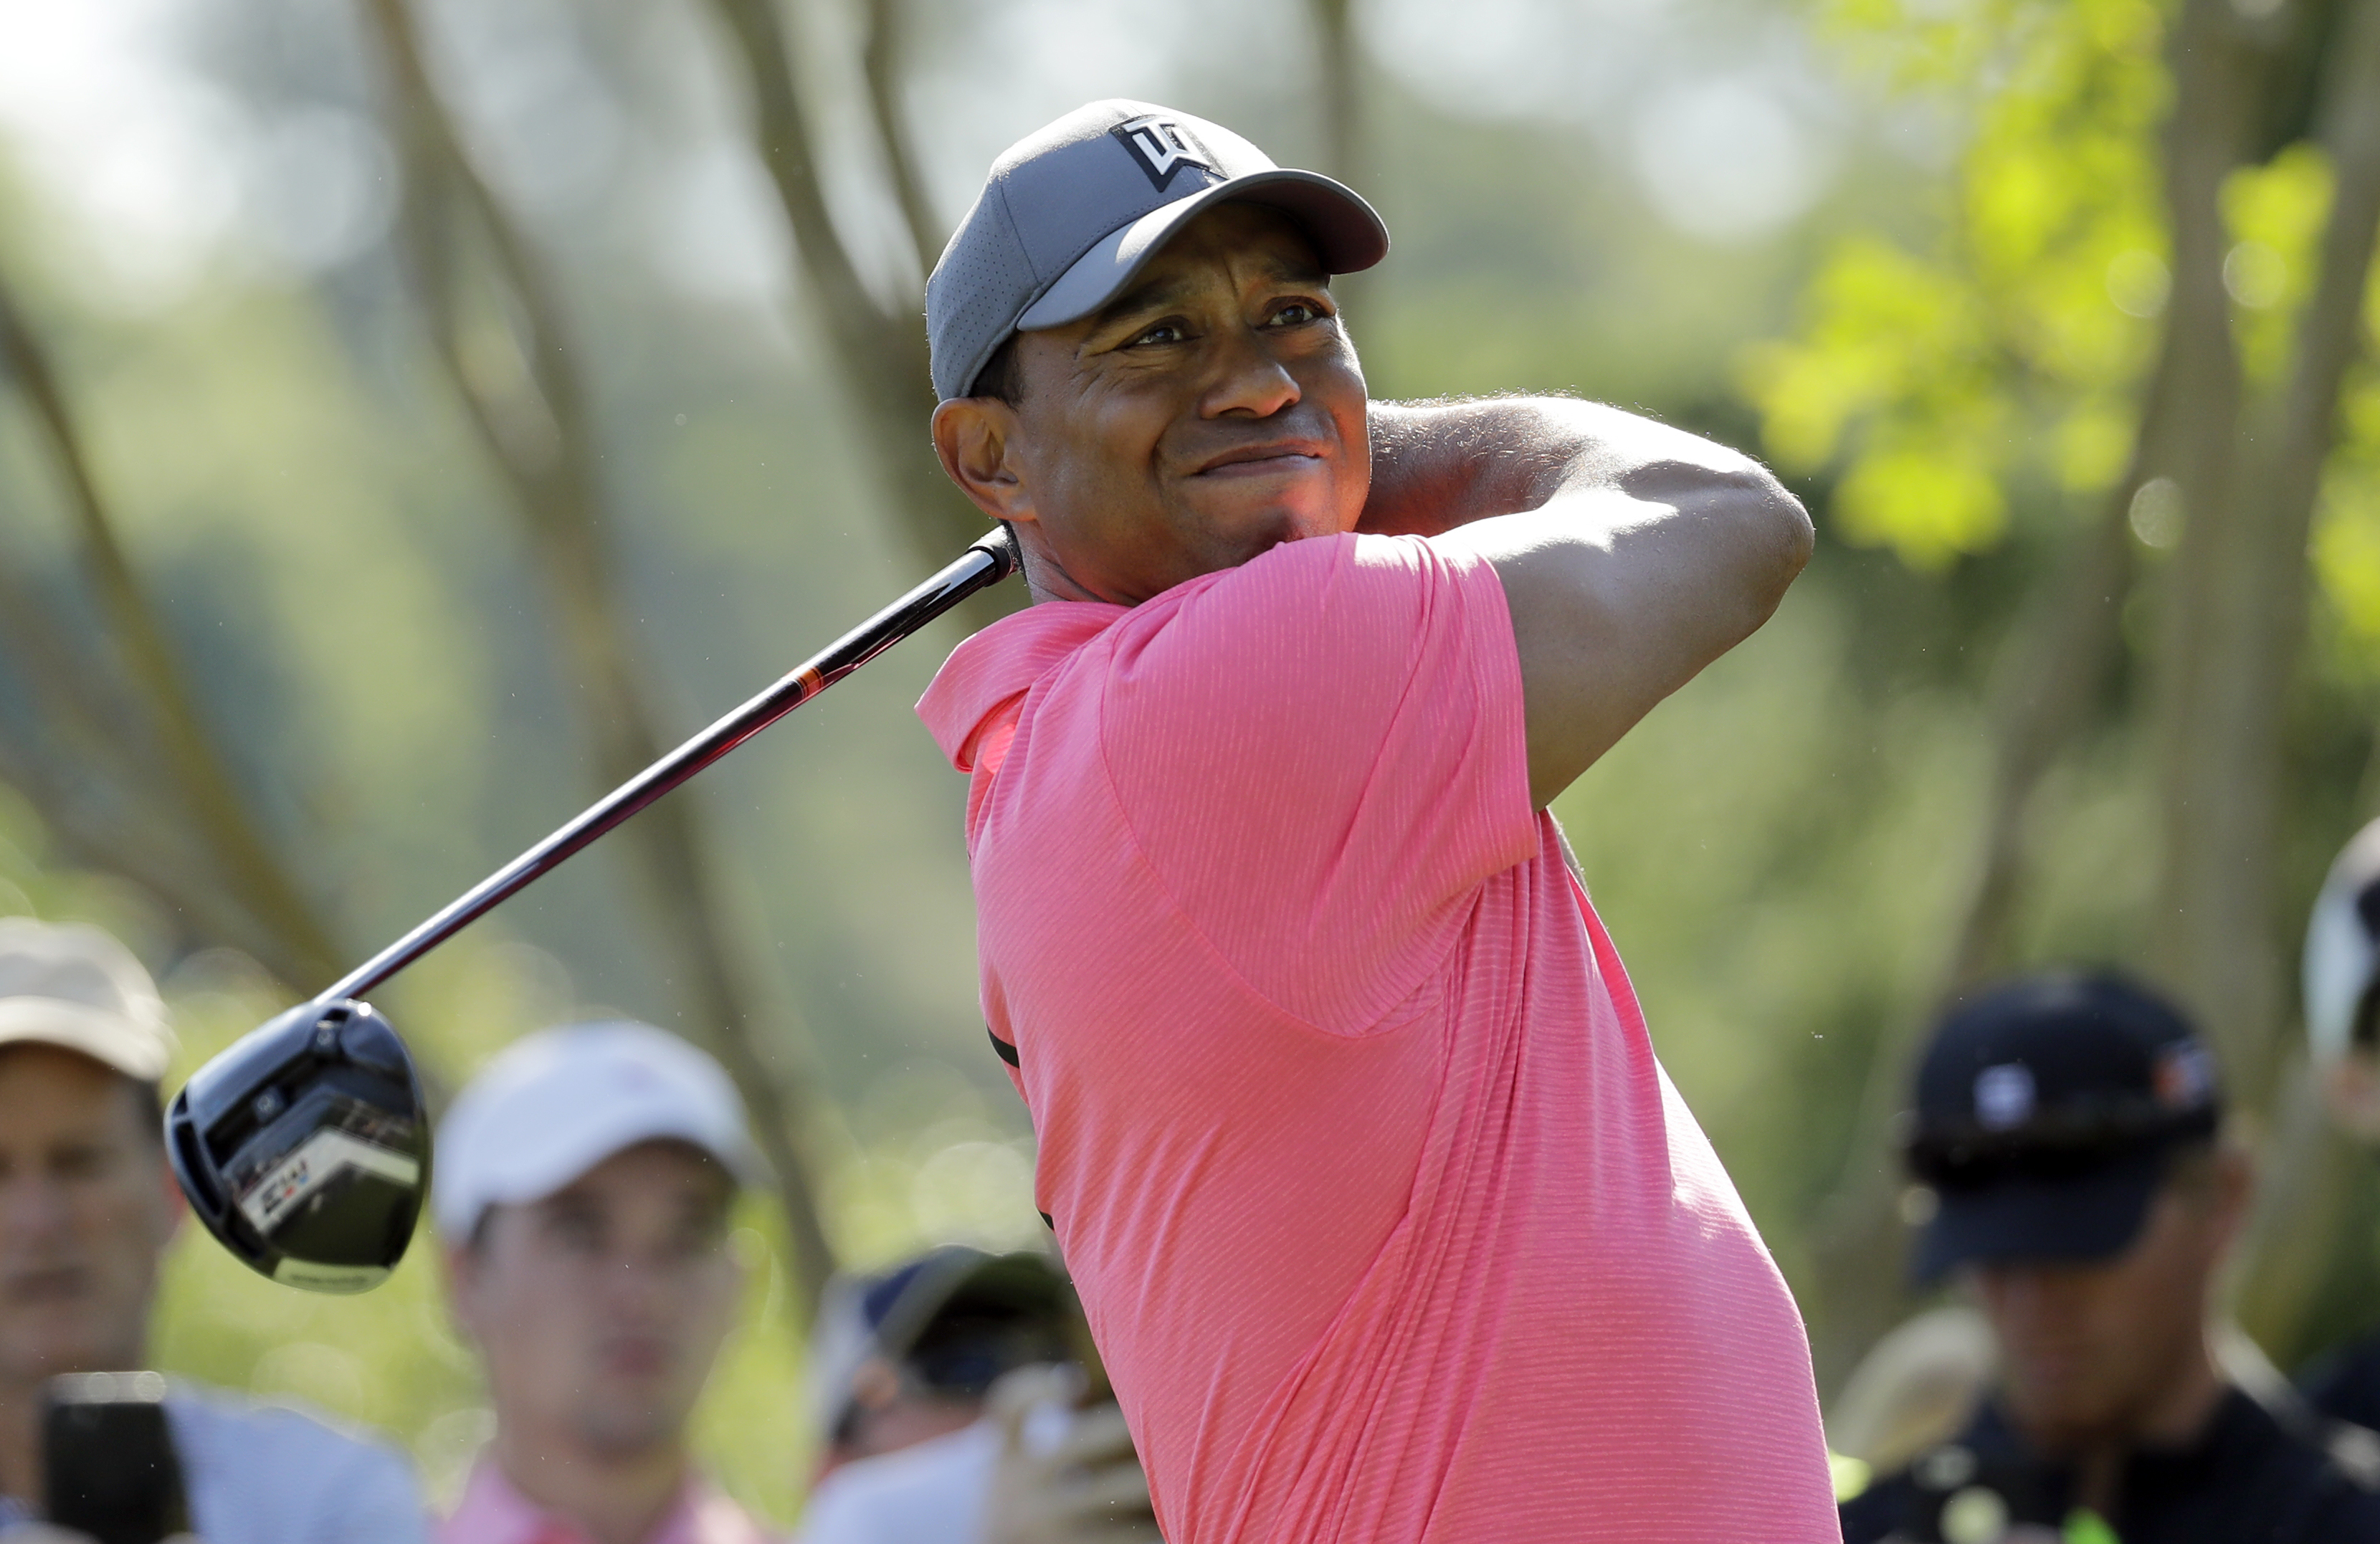 "<div class=""meta image-caption""><div class=""origin-logo origin-image ap""><span>AP</span></div><span class=""caption-text"">Tiger Woods watches his tee shot on the 11th hole. (Chuck Burton)</span></div>"